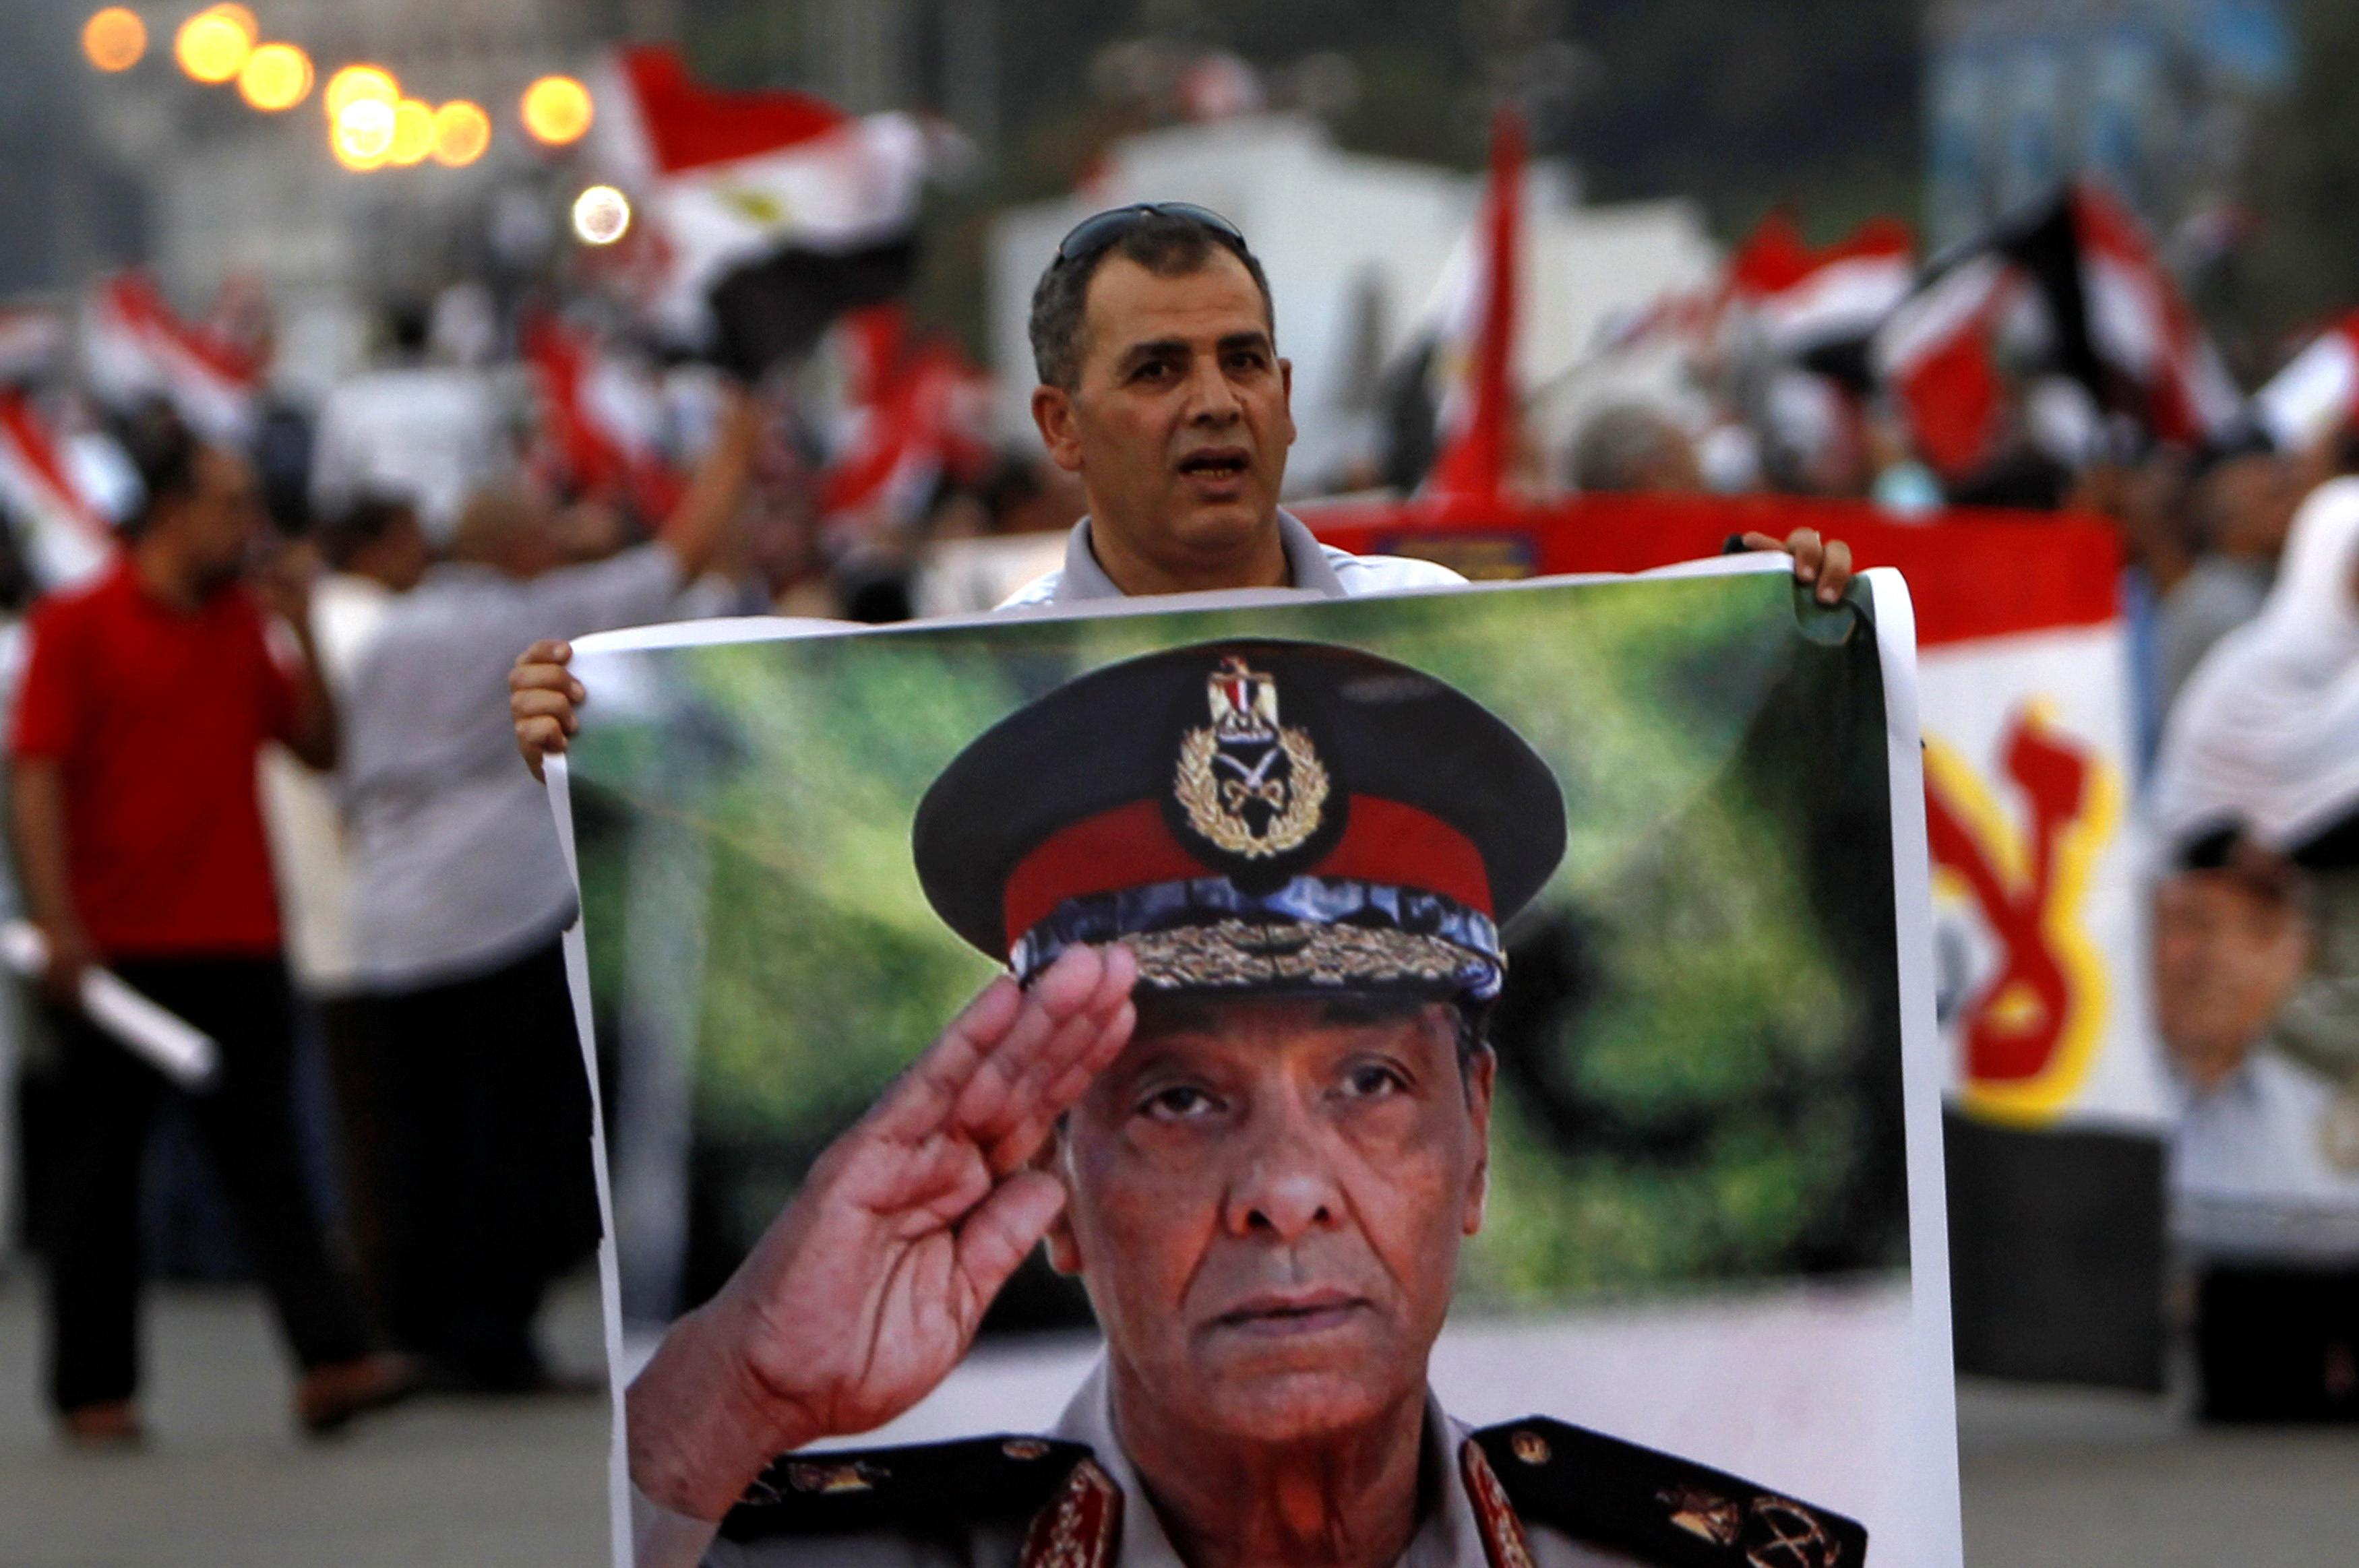 A supporter of former prime minister and presidential candidate Ahmed Shafik holds a poster of Field Marshal Mohamed Hussein Tantawi, the head of the ruling Supreme Council of the Armed Forces (SCAF) during a rally in front of the military parade stand at Nasr City in Cairo June 23, 2012. REUTERS/Amr Abdallah Dalsh/File Photo